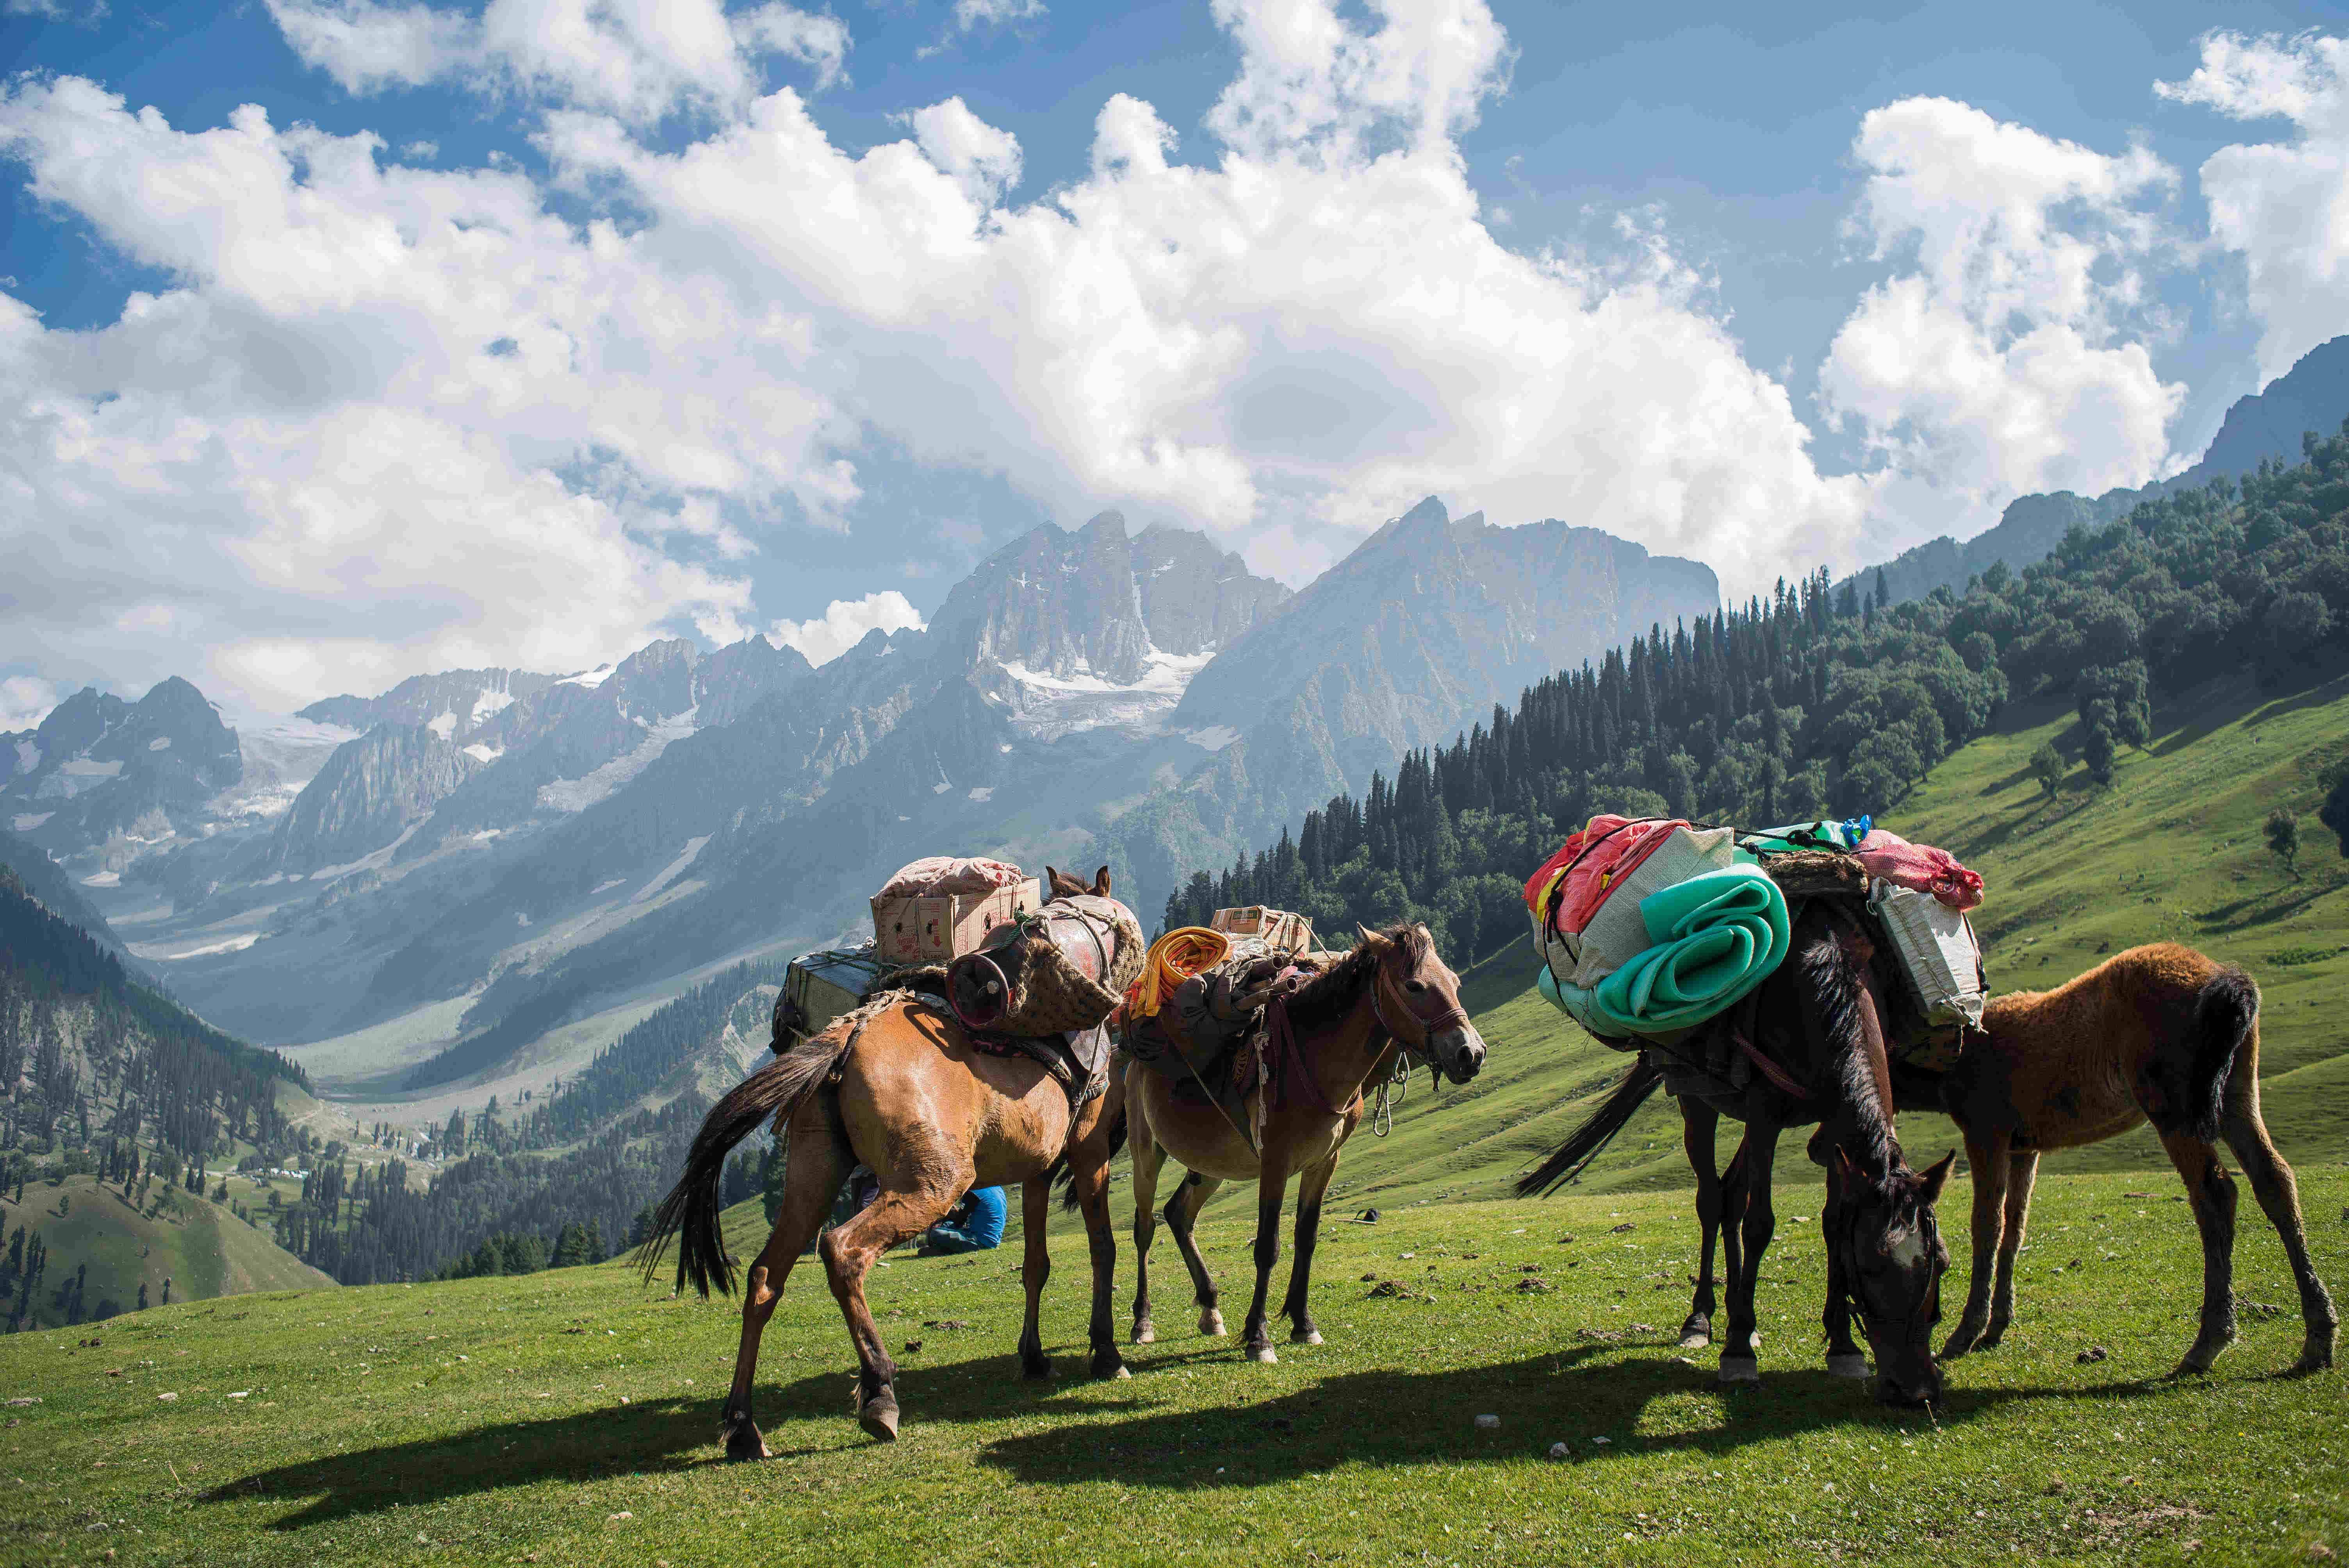 Everyday life in Kashmir captured in these incredible images